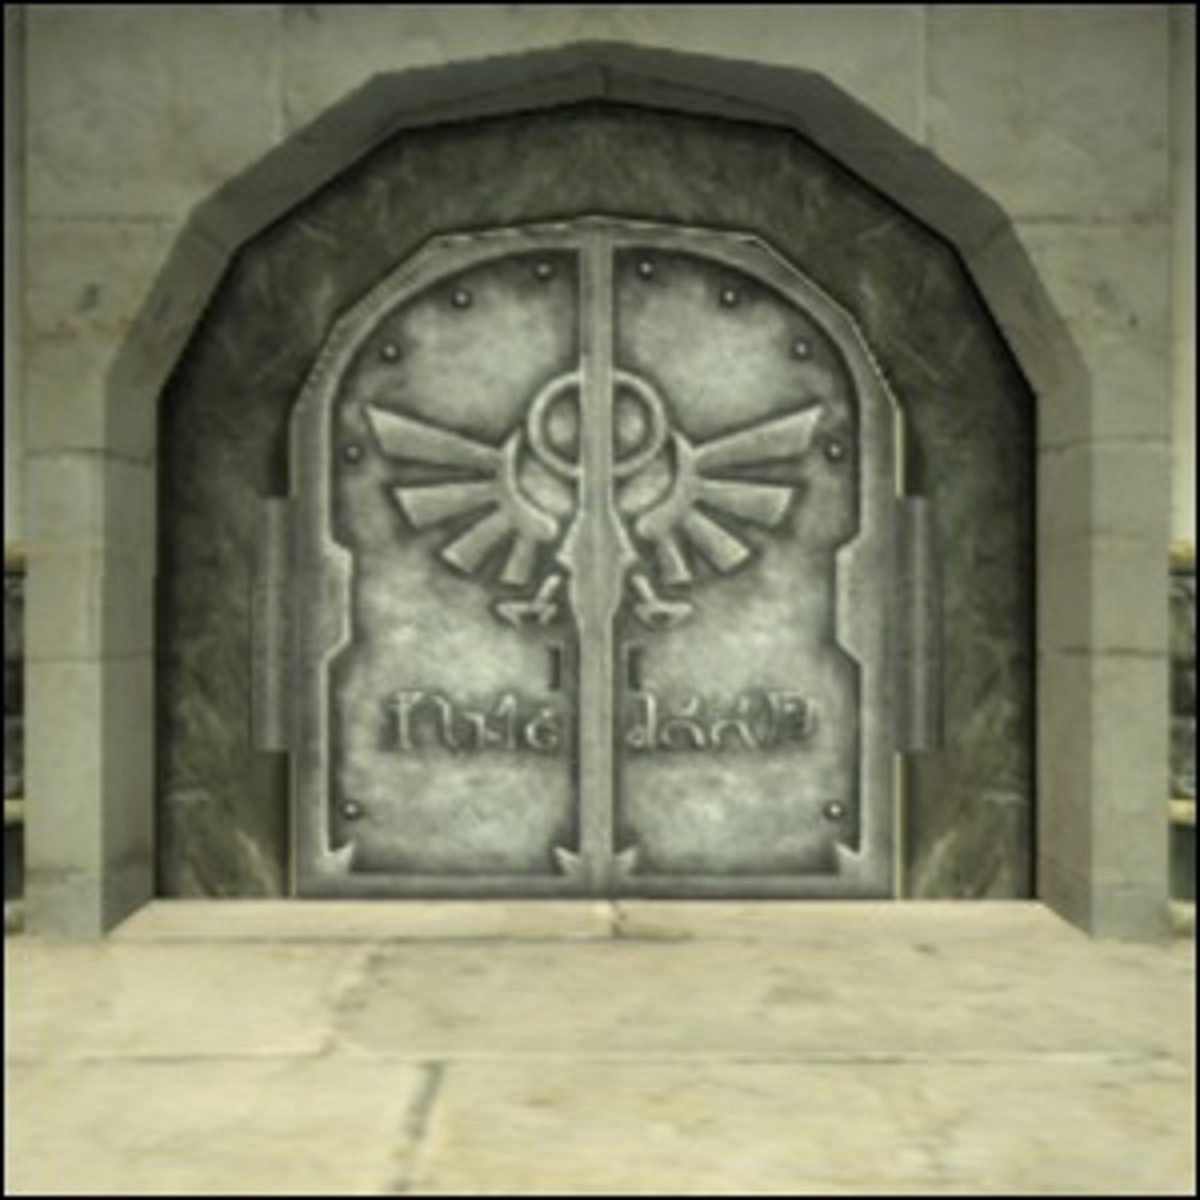 The entrance to the Temple of Time in Twilight Princess.